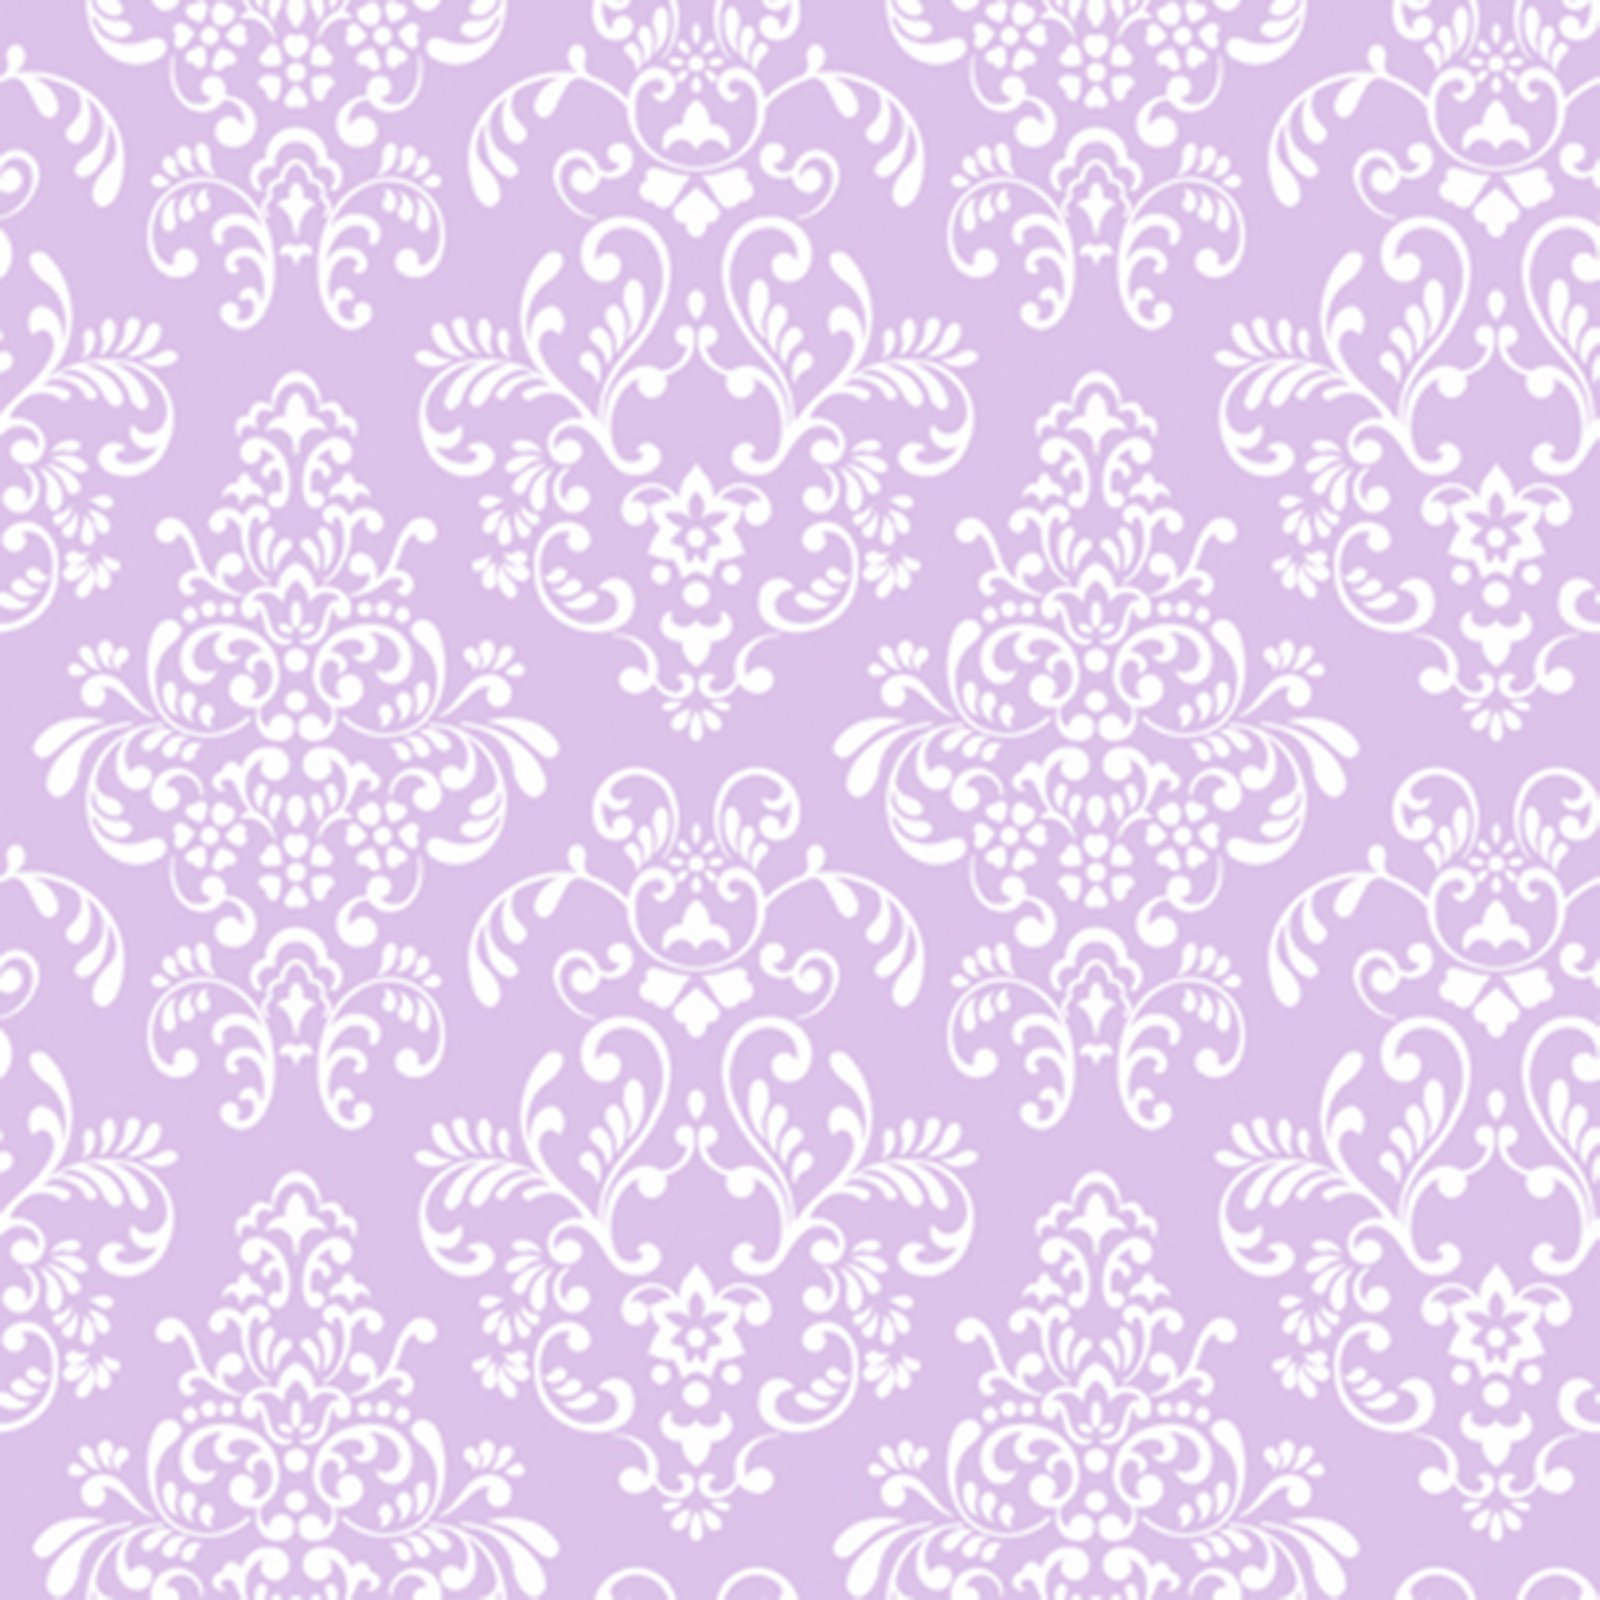 York Wallcoverings Peek-A-Boo Delicate Document Damask Wallpaper